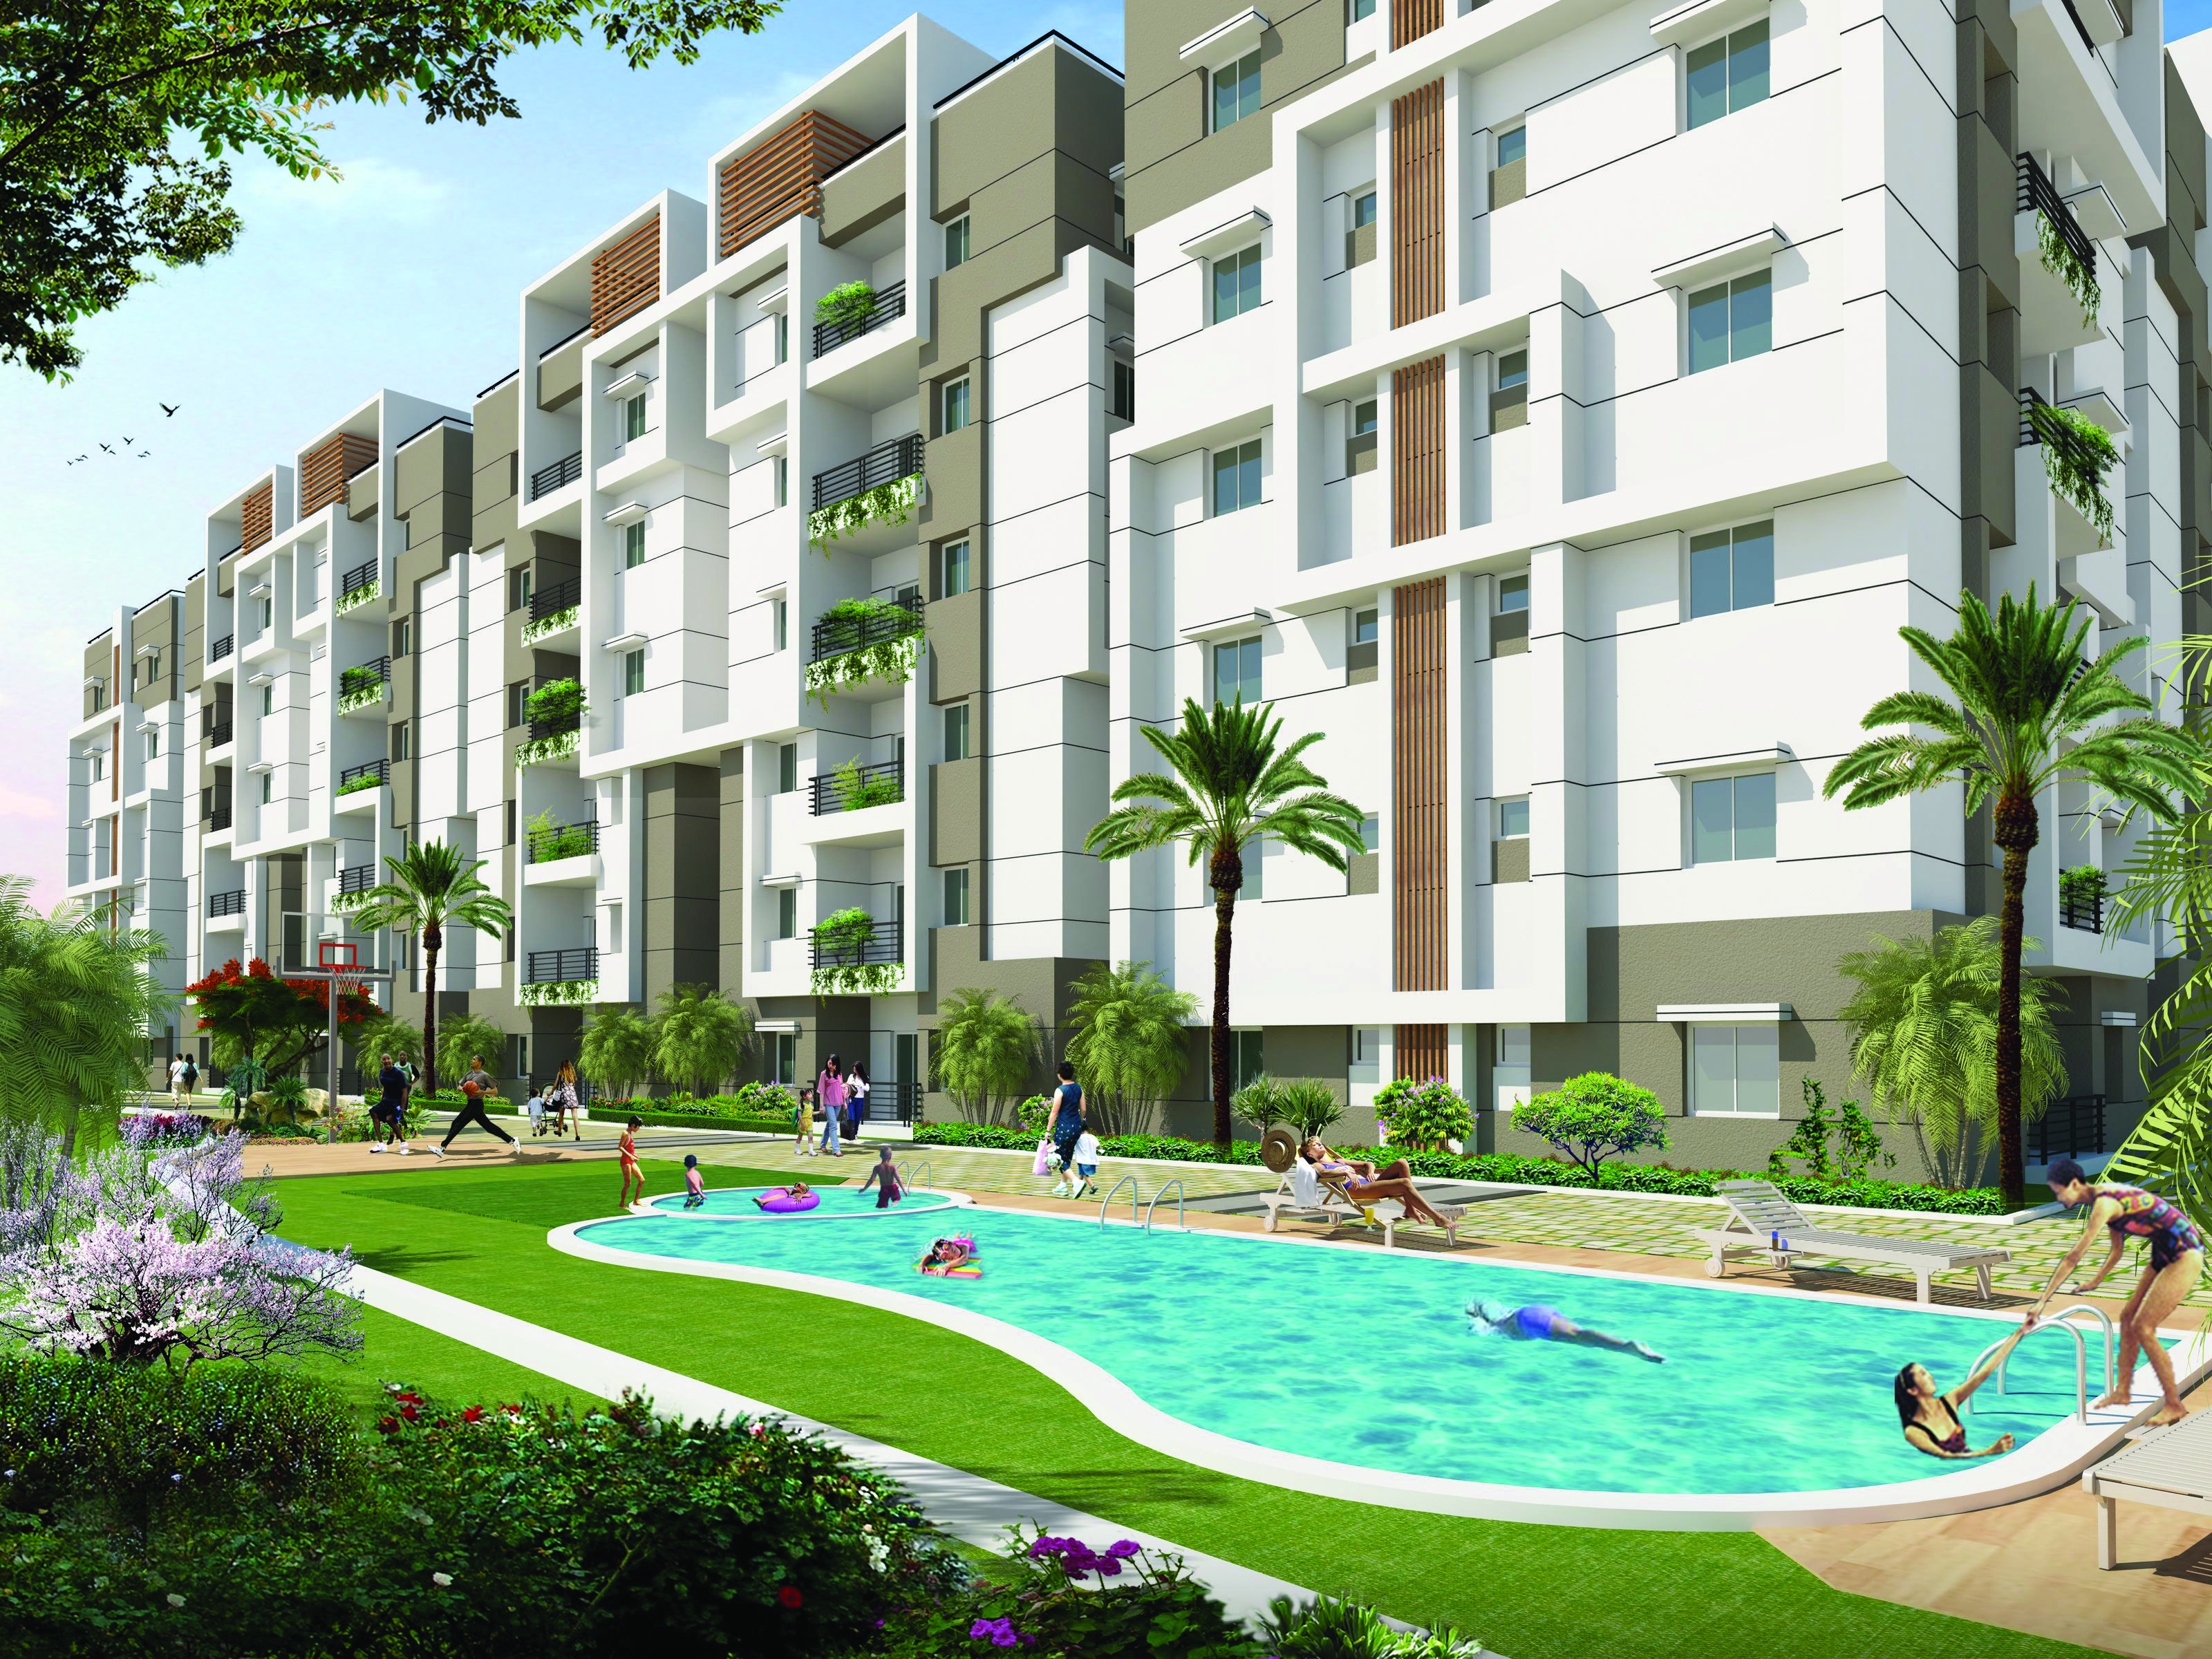 Luxury Apartments in Mehdipatnam, Hyderabad: We offer ...